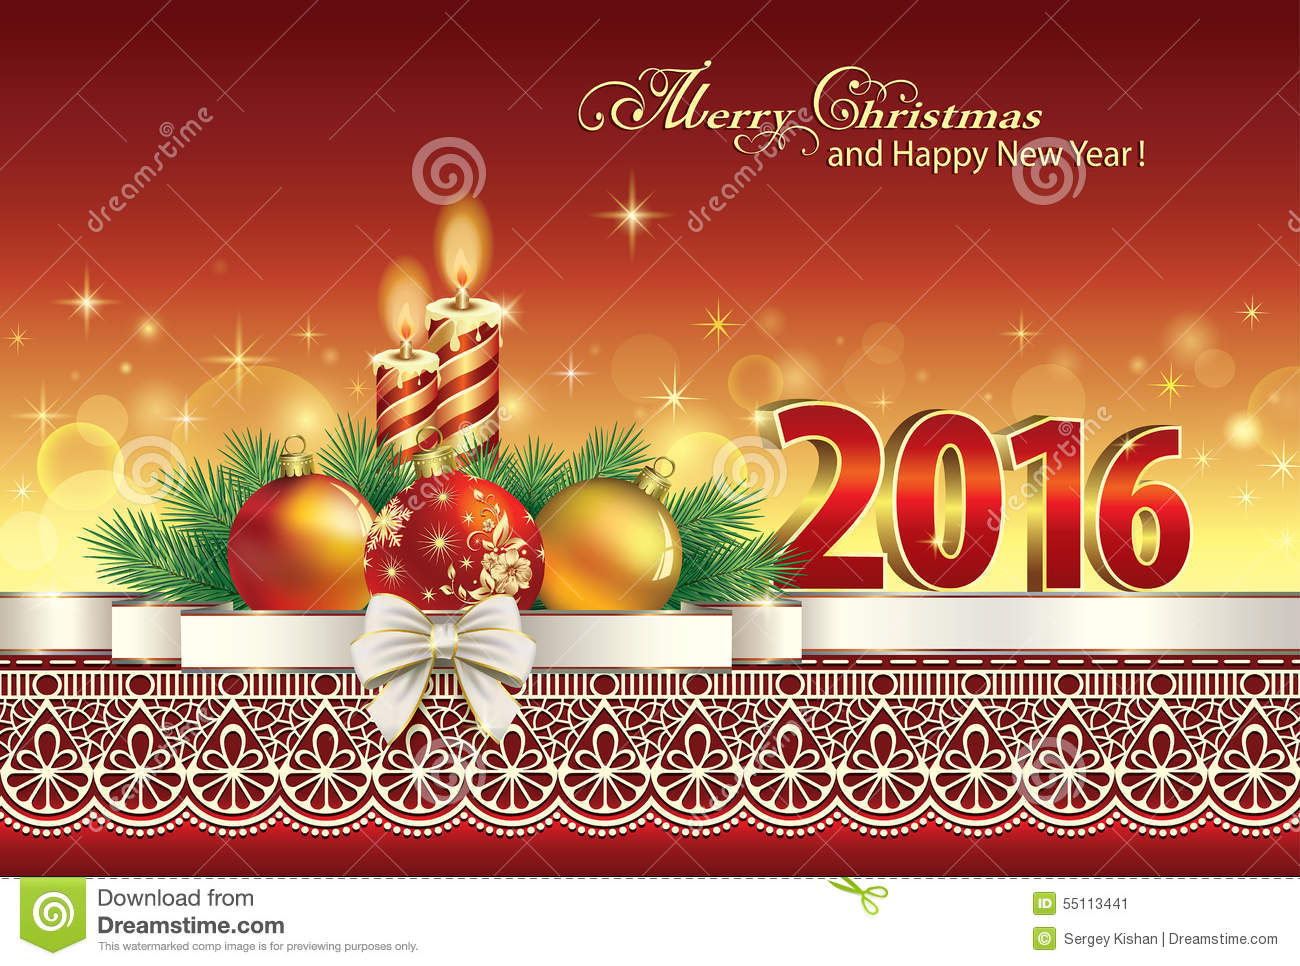 123 Greeting Cards For New Year And Christmas New Yearfo 2019